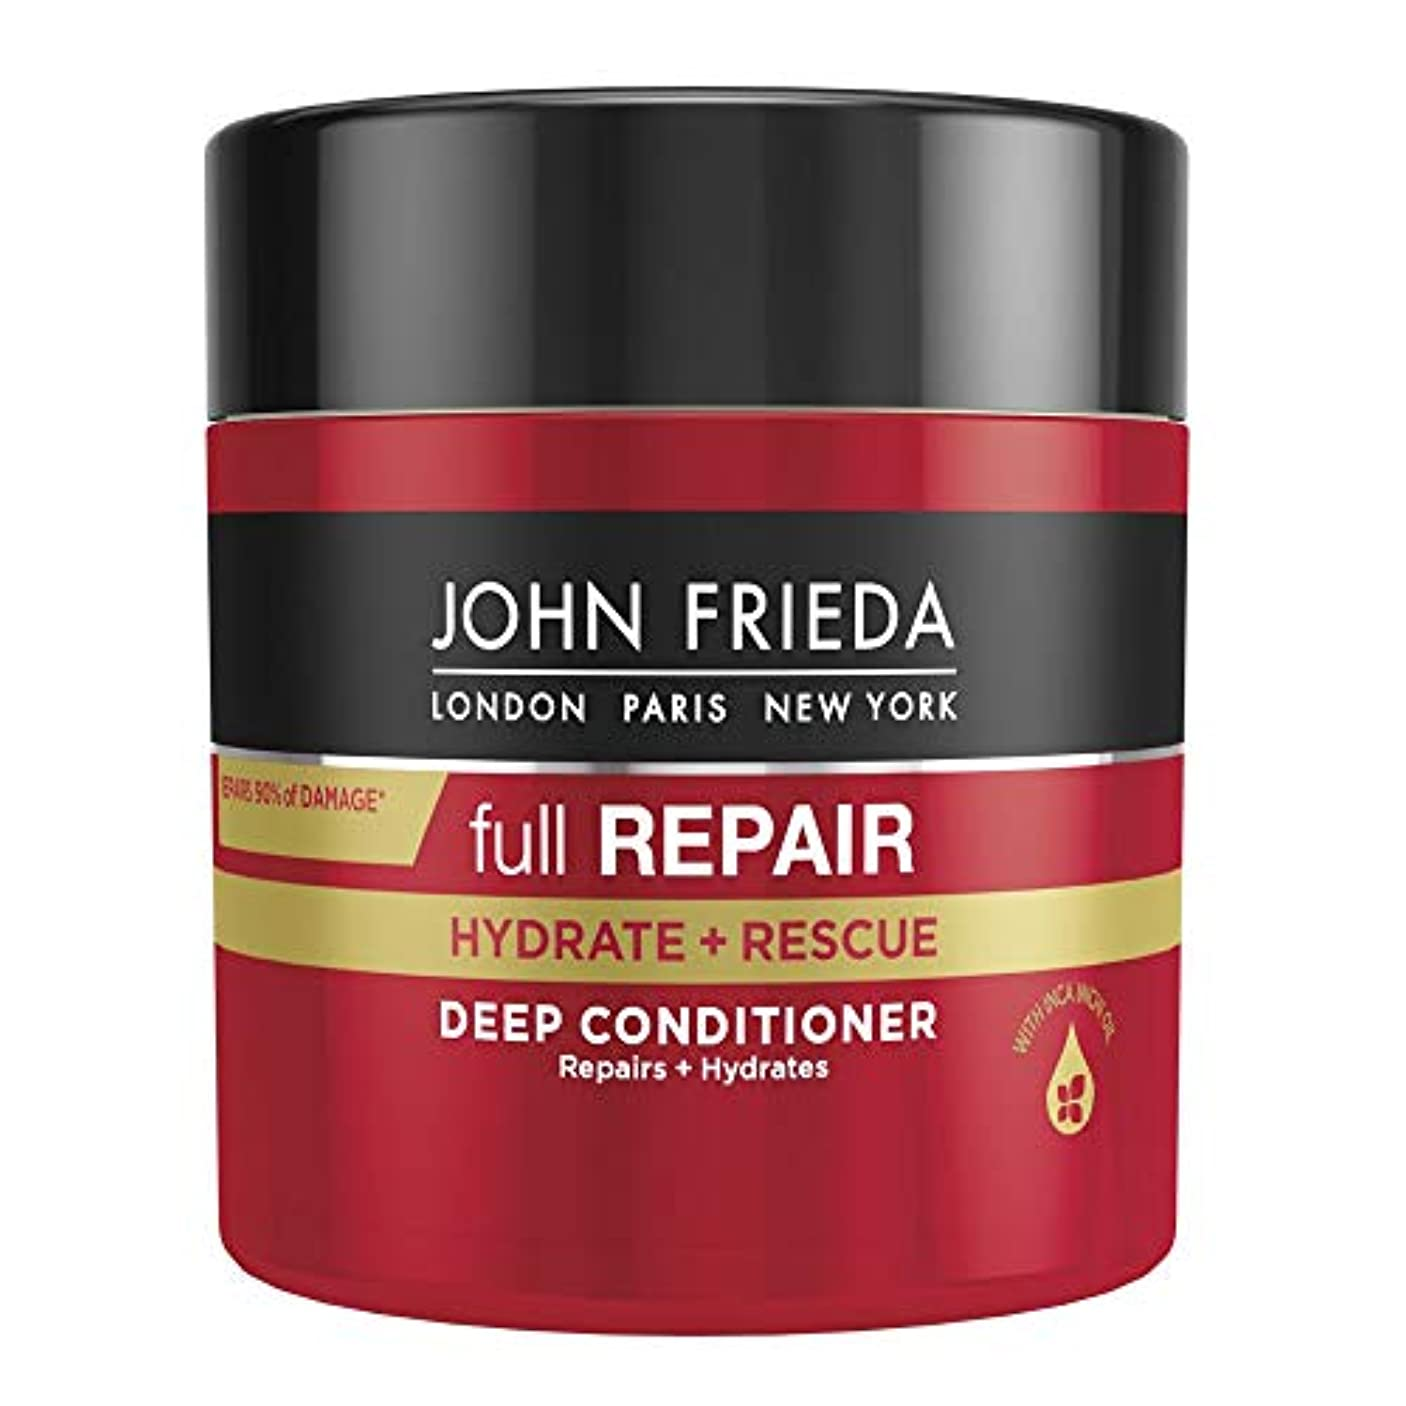 形状パーツクラッシュJohn Frieda? Full Repair(TM) Deep Conditioner 150ml